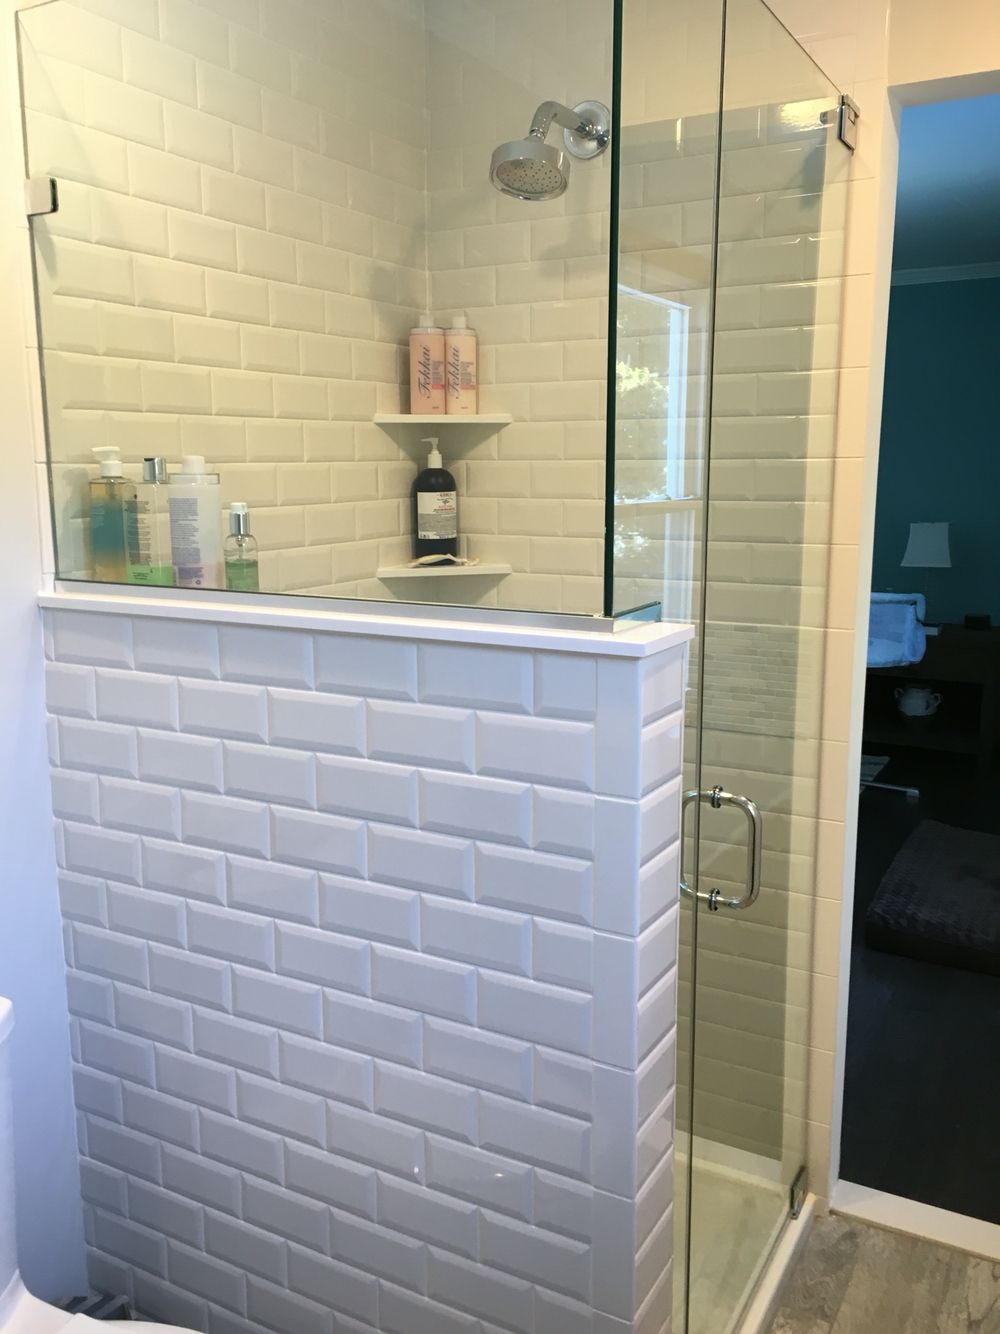 Our master bathroom shower with beveled subway tiles | Master bath ...